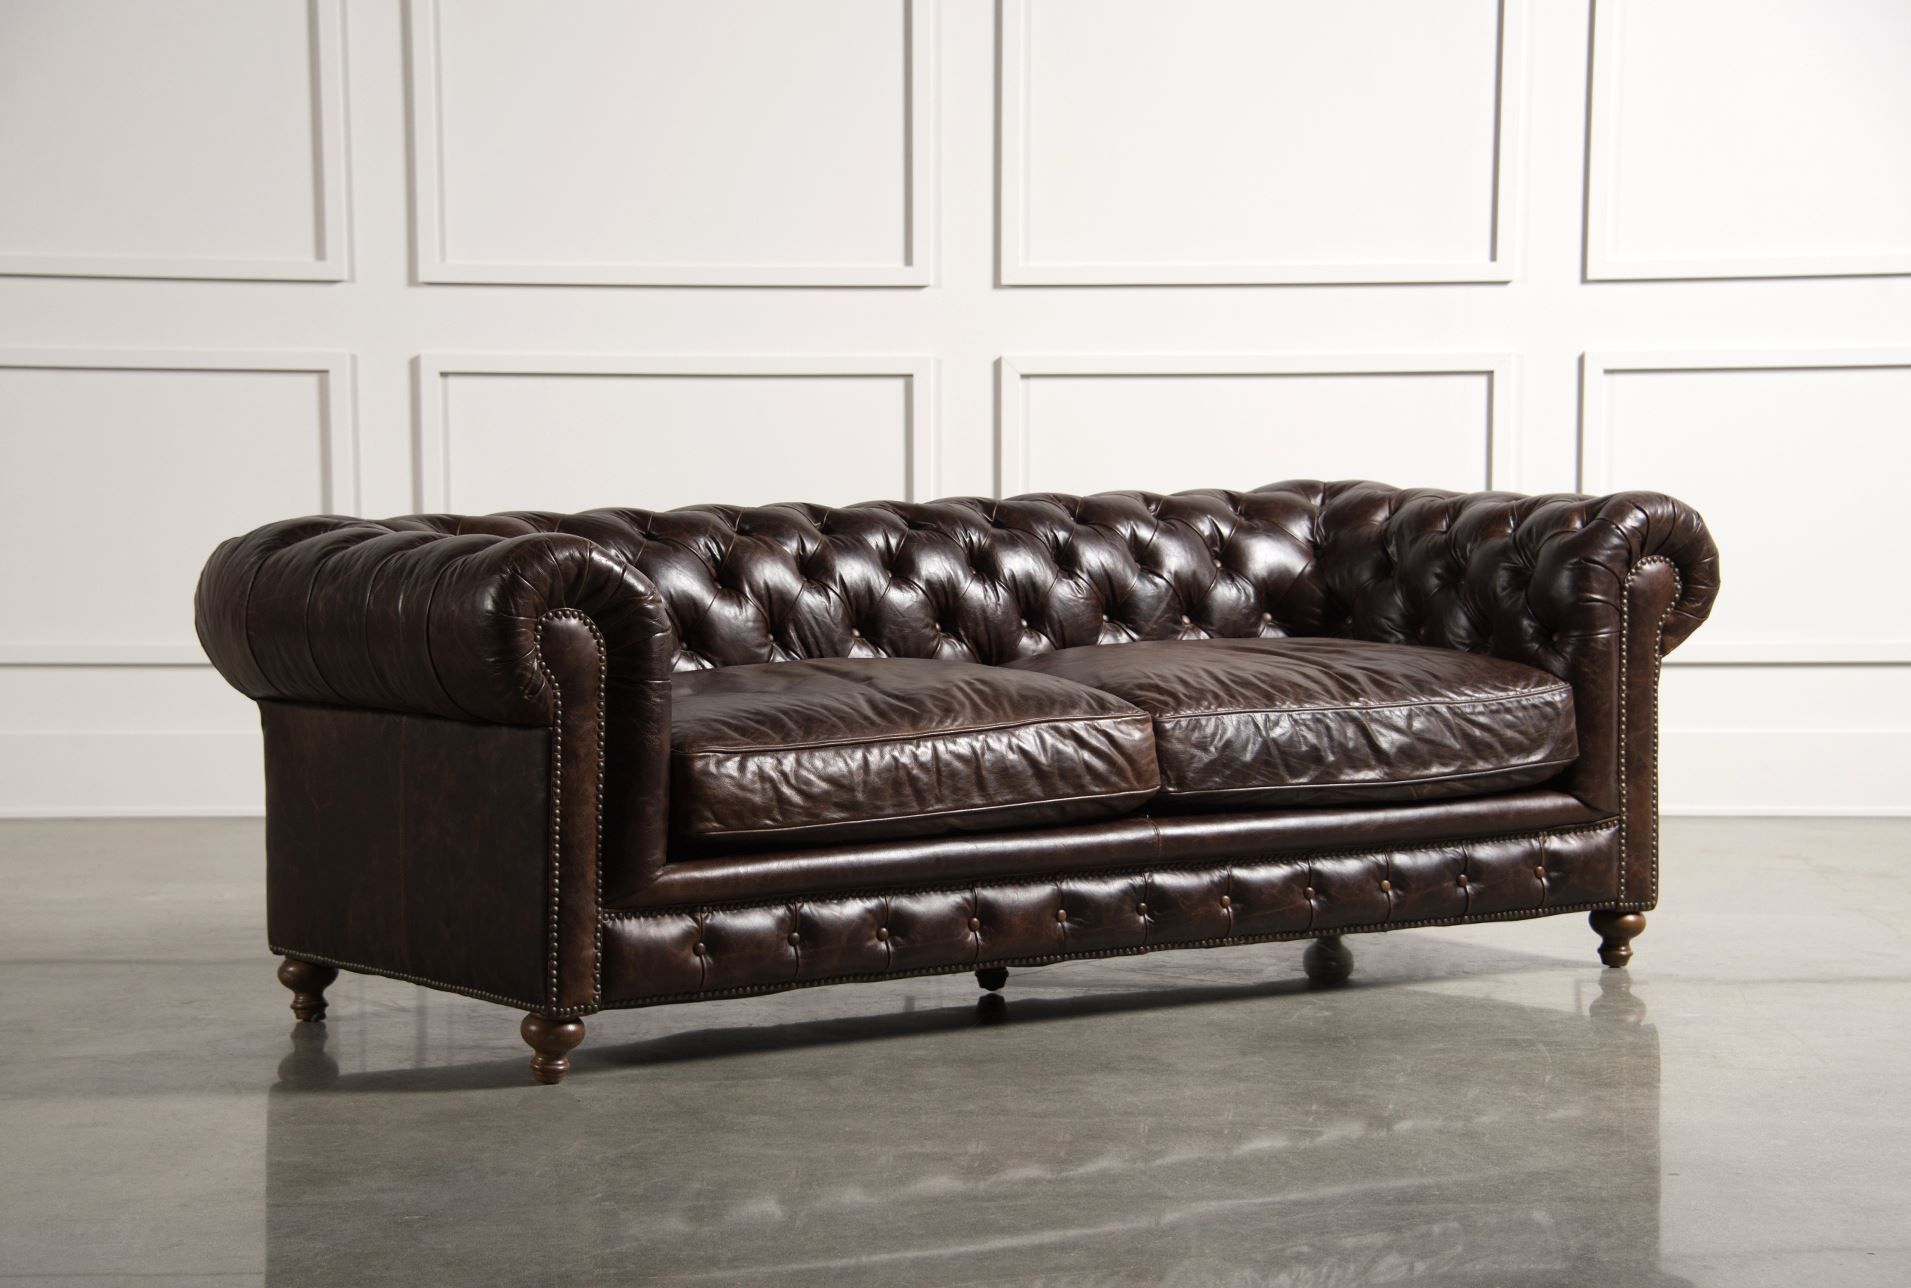 Winthrop Sofa The Classic Lines Of This Chesterfield Sofa Is One Within Mansfield Graphite Velvet Sofa Chairs (View 3 of 25)